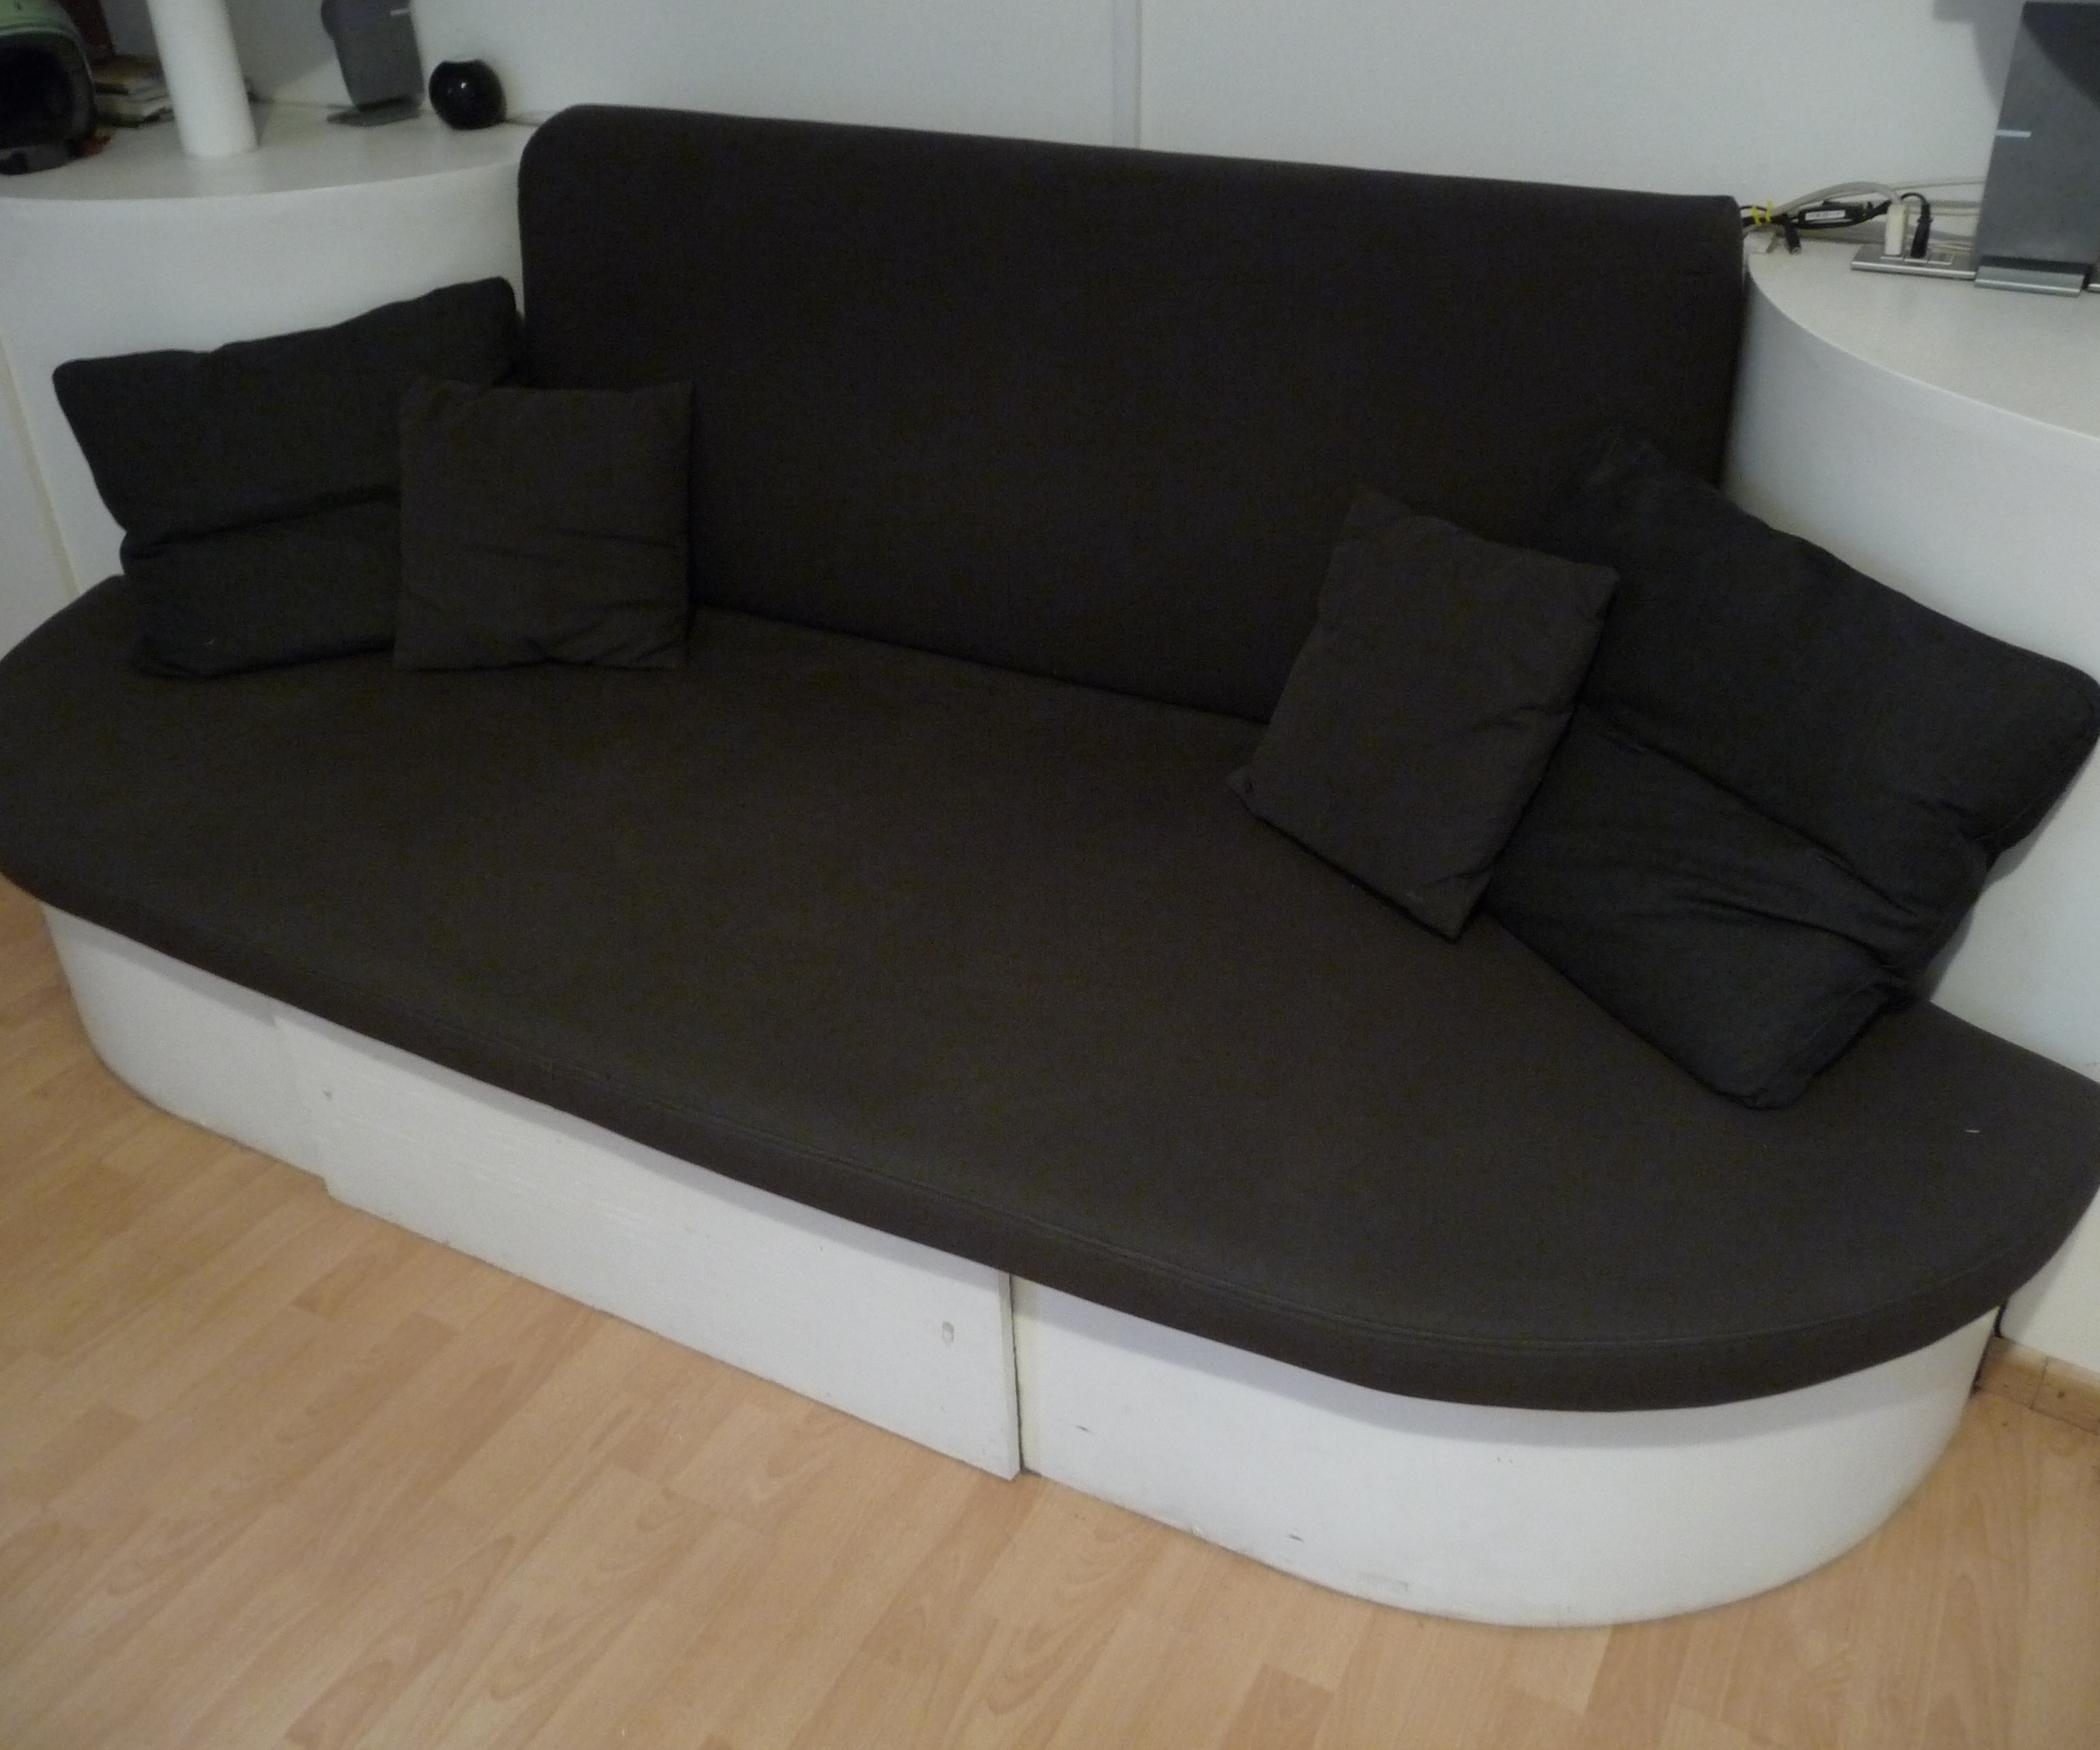 Diy Stylish Sofa Bed: 7 Steps (With Pictures) Inside Giant Sofa Beds (Image 6 of 20)